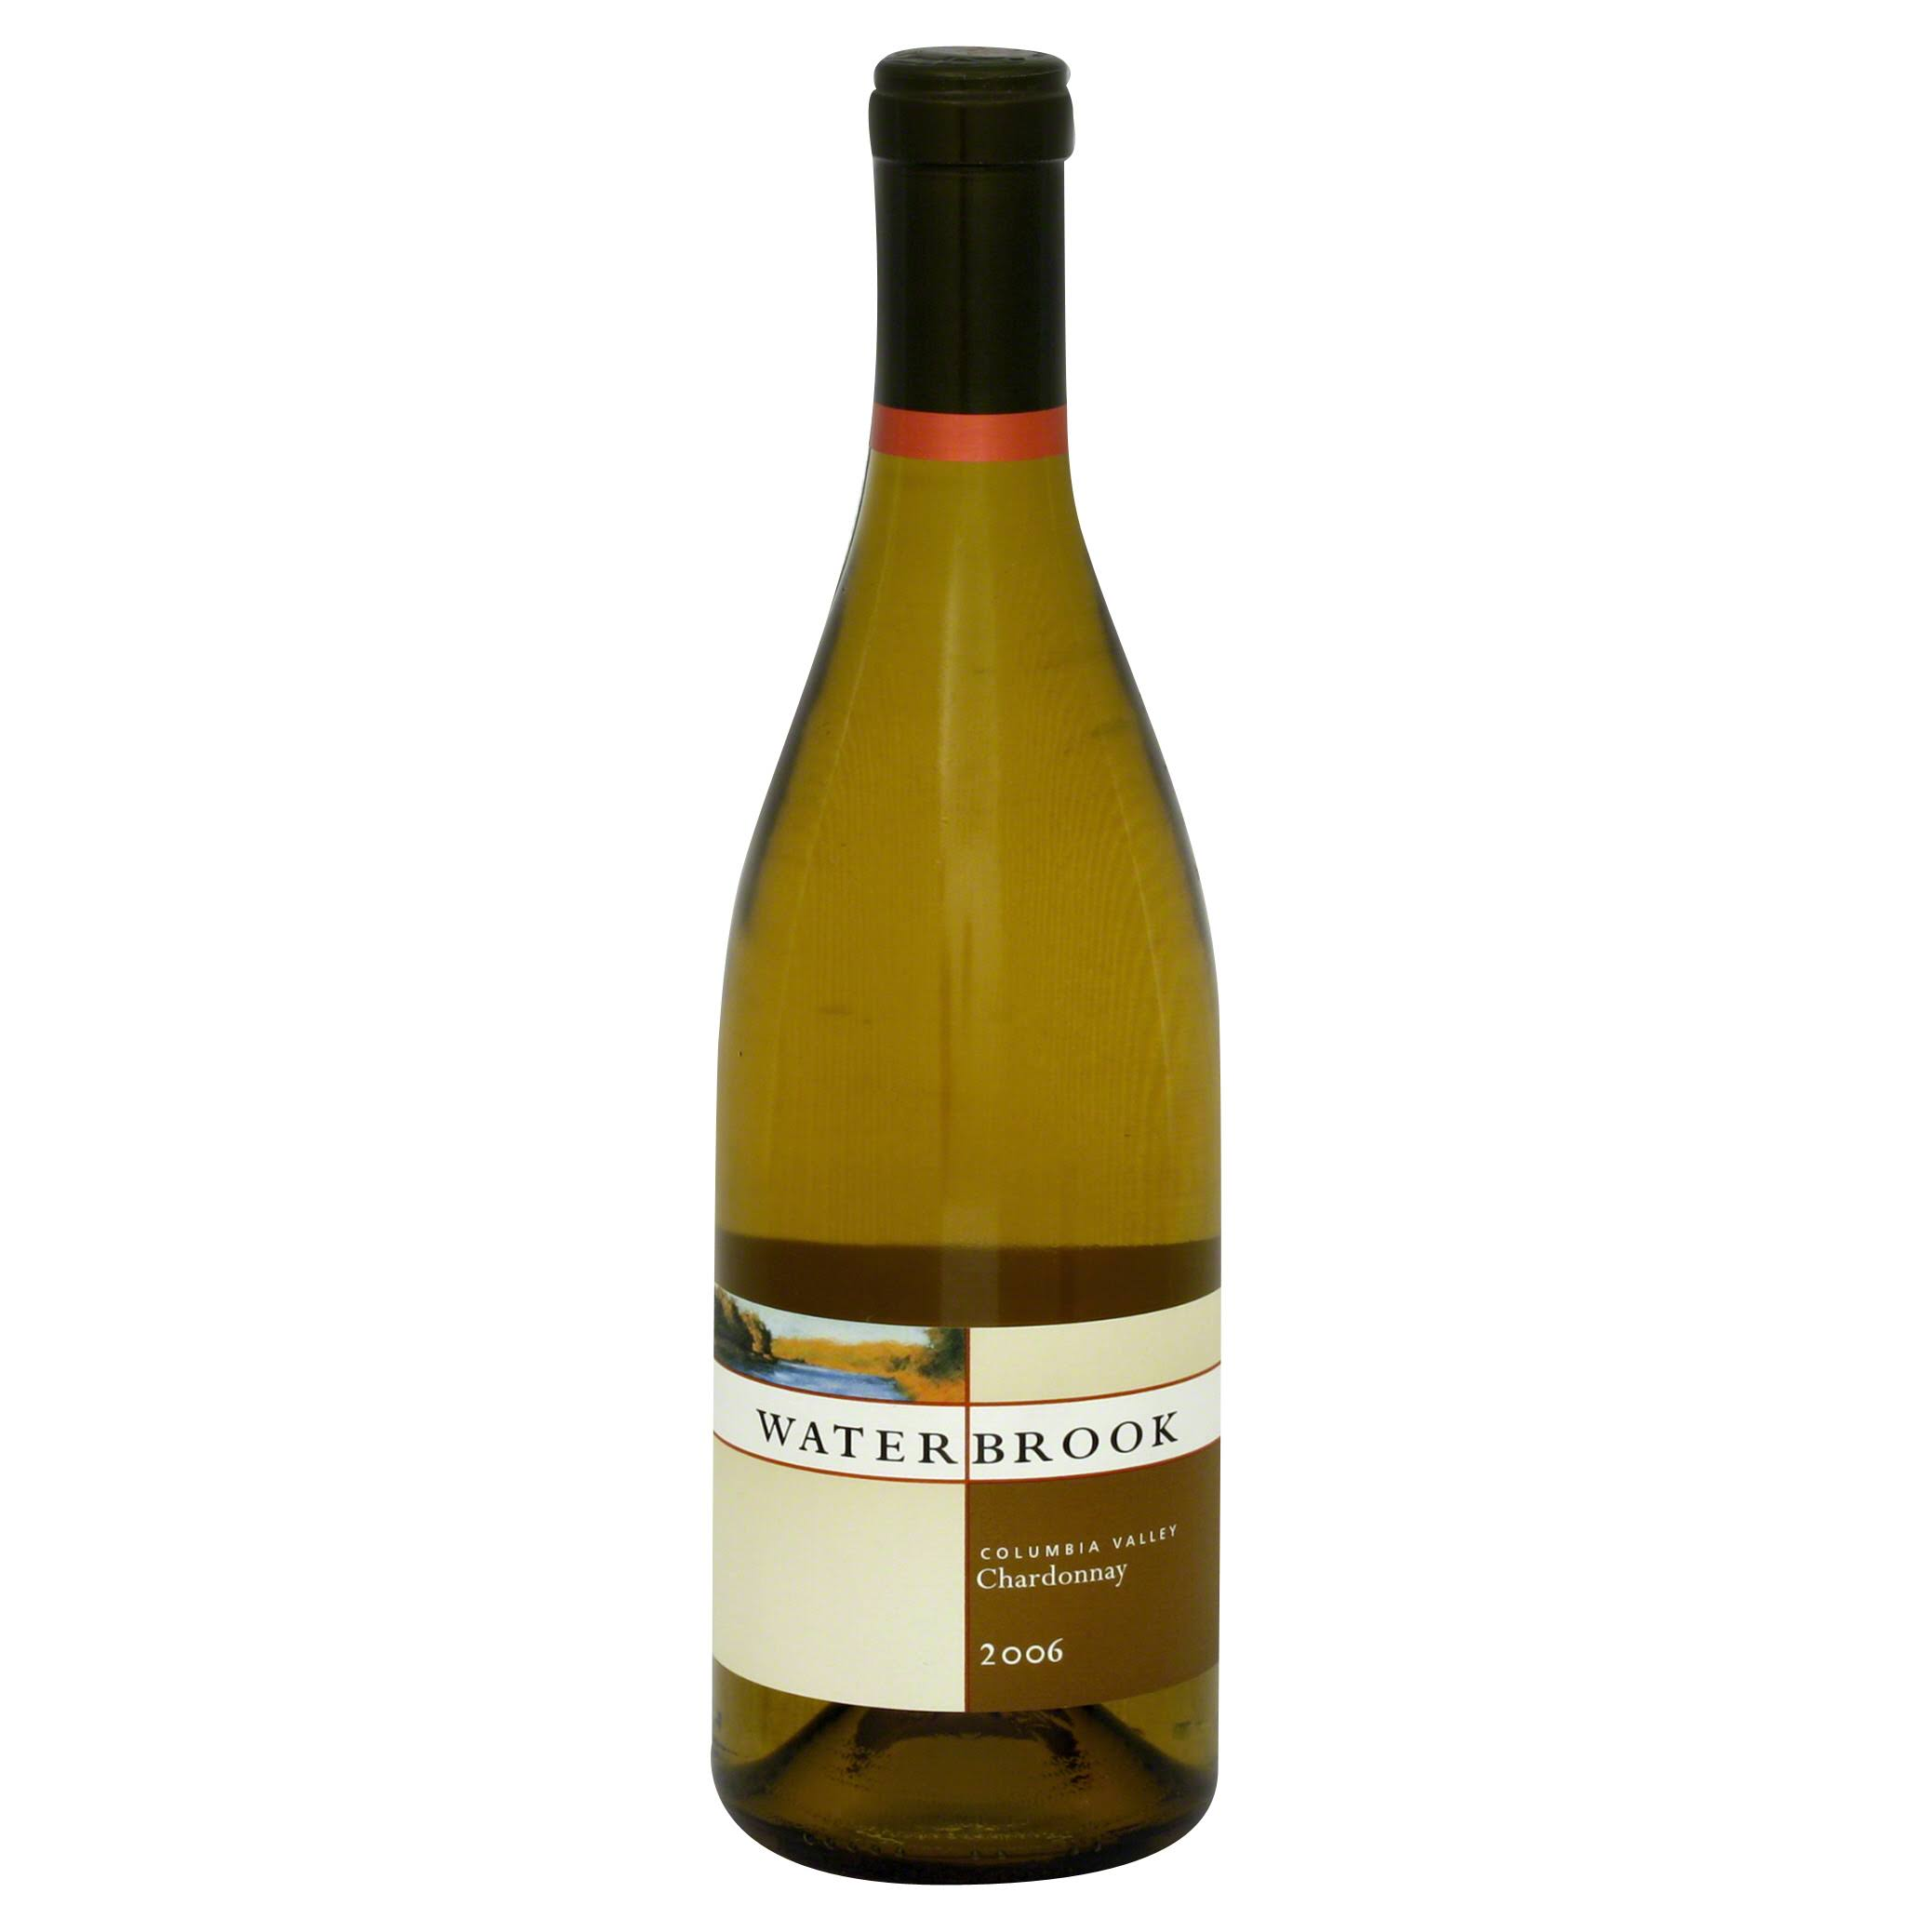 Waterbrook Chardonnay Columbia Valley